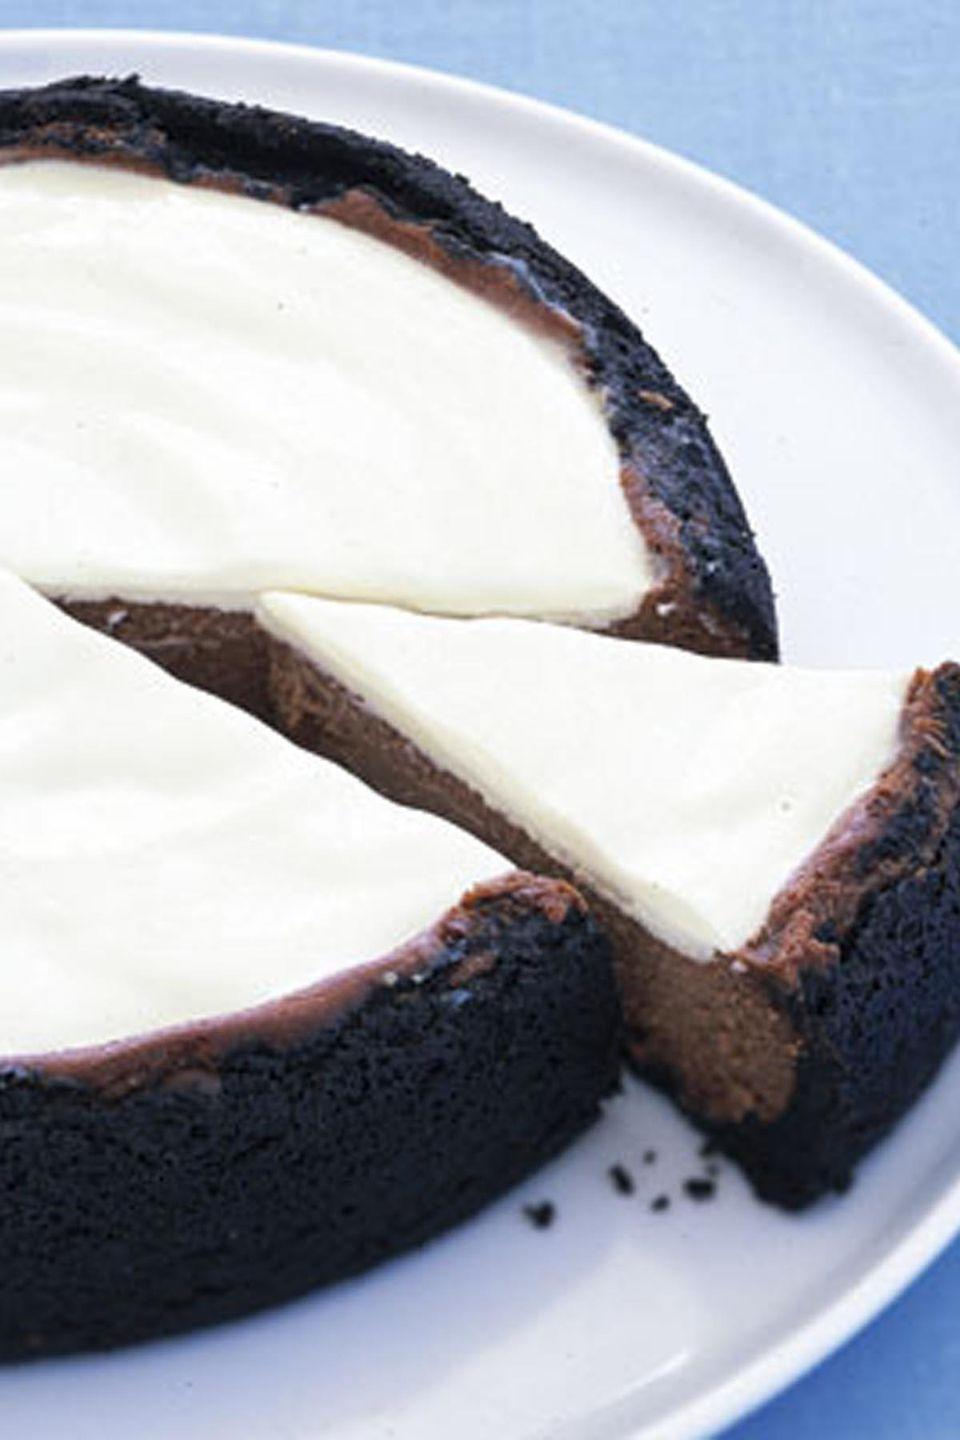 "<p>To make this classic cheesecake even creamier, add milk chocolate with a dark cookie crust, just for fun.</p><p><strong><a href=""https://www.countryliving.com/food-drinks/recipes/a6848/milk-chocolate-cheesecake-ghk1206/"" rel=""nofollow noopener"" target=""_blank"" data-ylk=""slk:Get the recipe"" class=""link rapid-noclick-resp"">Get the recipe</a>.</strong></p>"